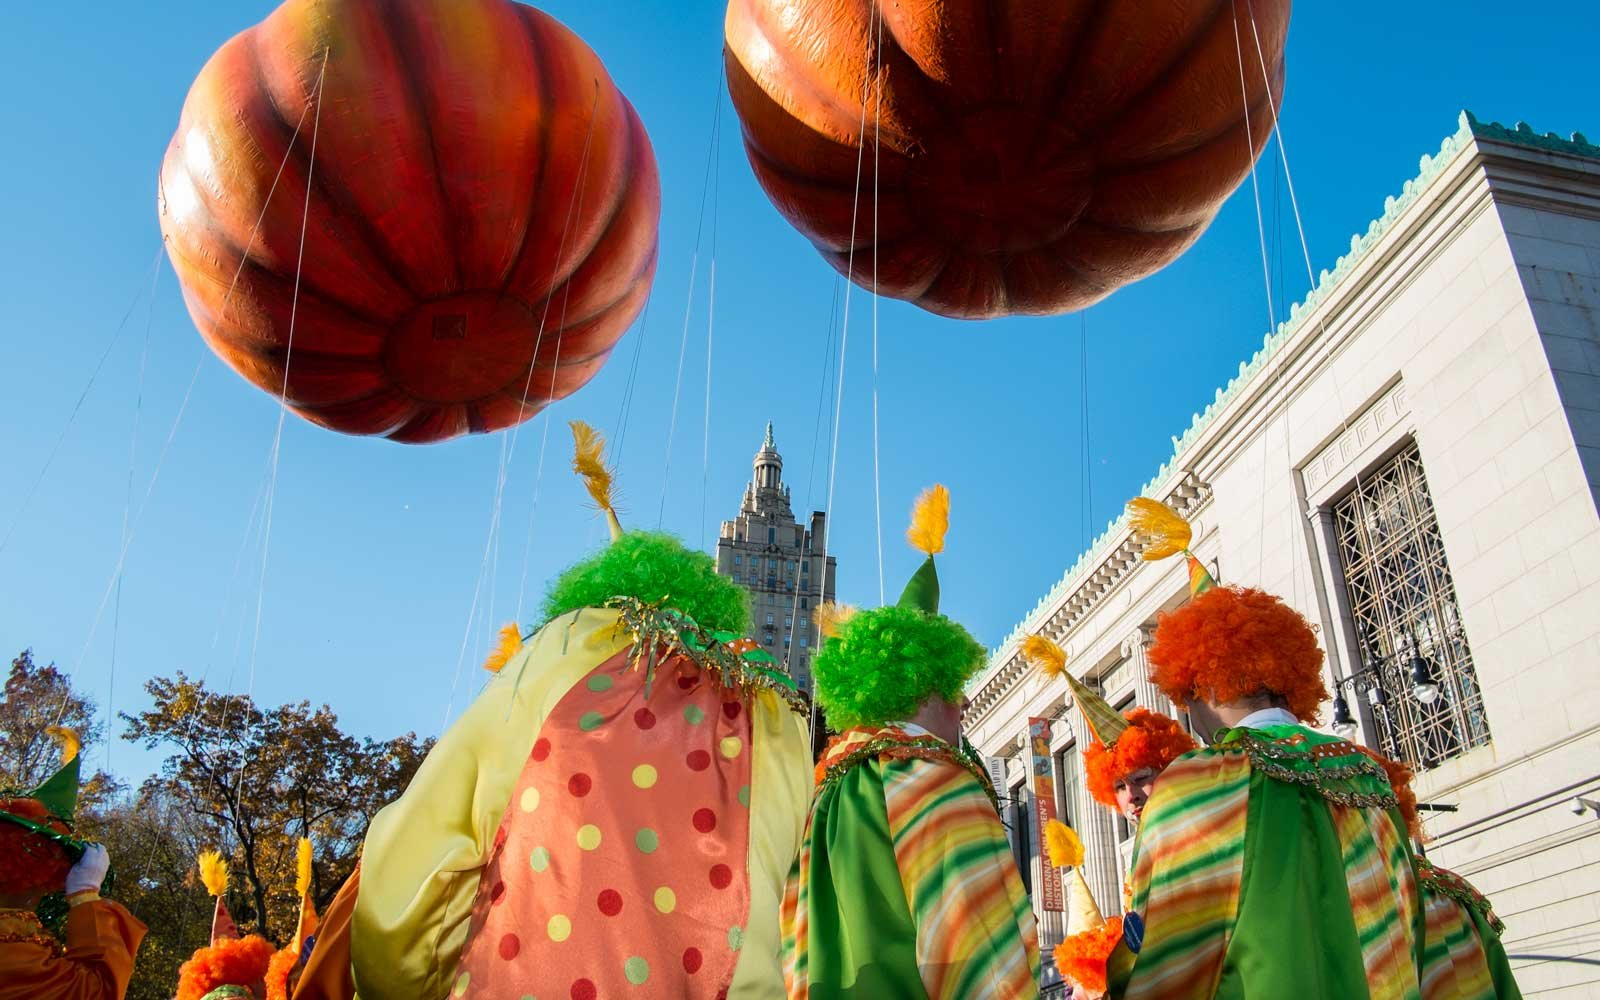 Behind the scenes at the Macy's Thanksgiving Day Parade